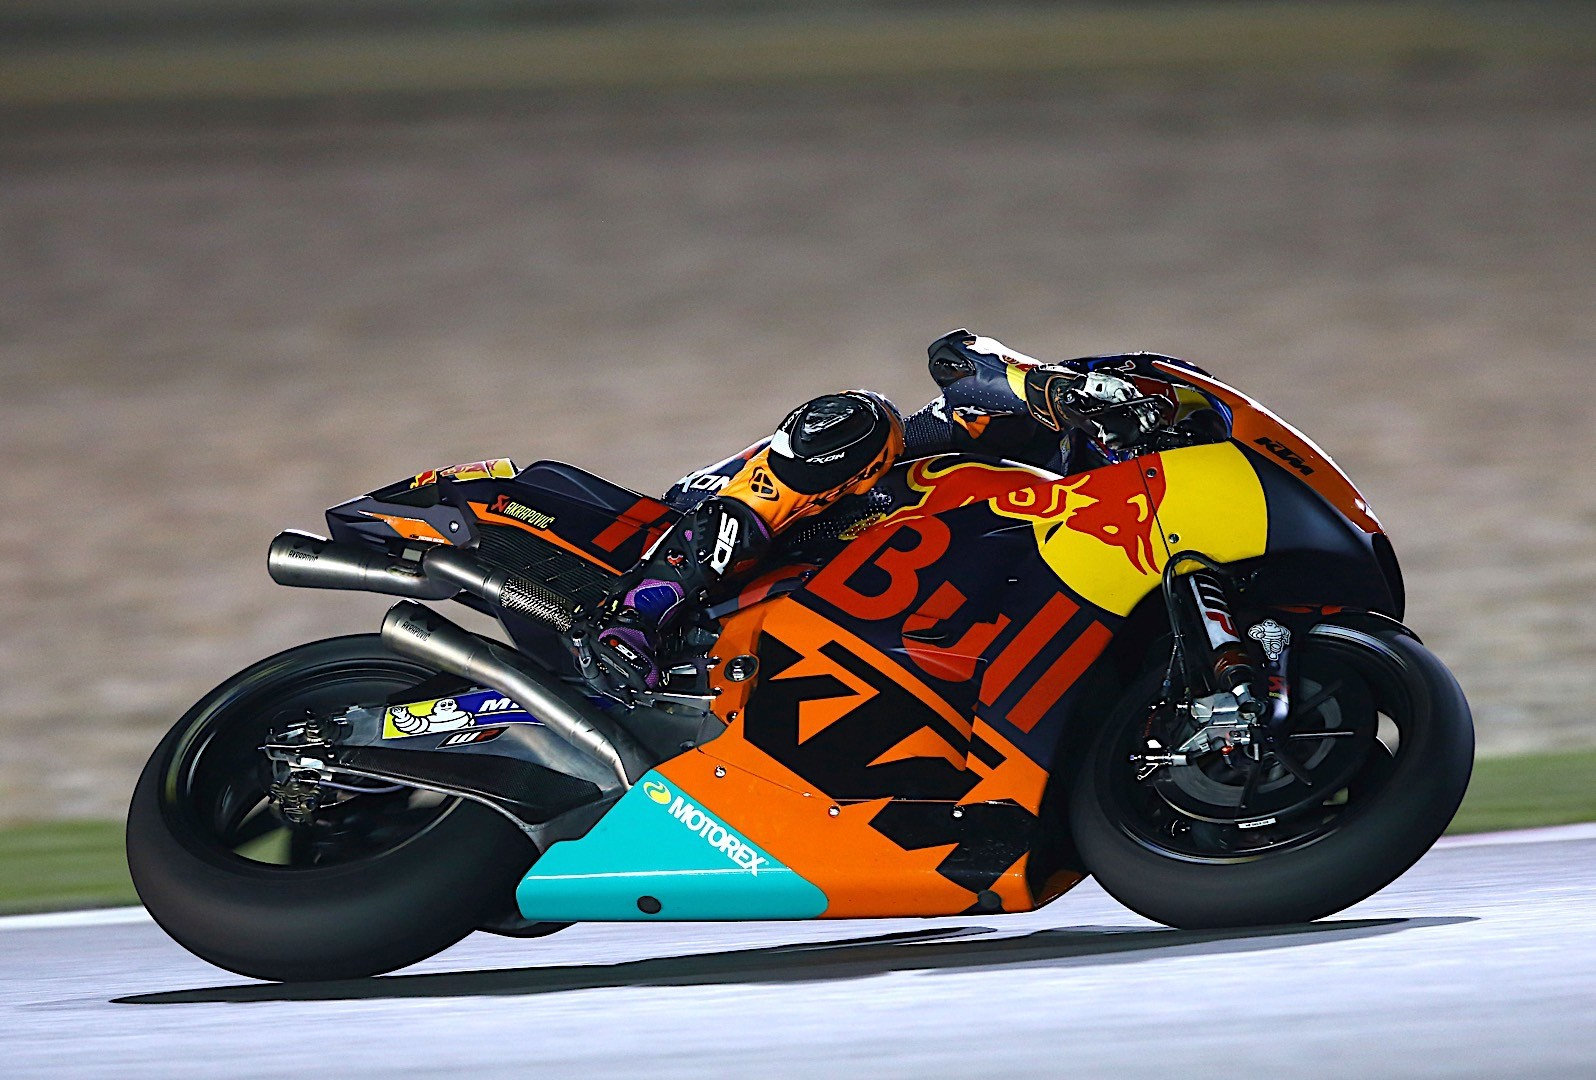 KTM Is Ready To Race Qatar Grand Prix After Final Tests - autoevolution